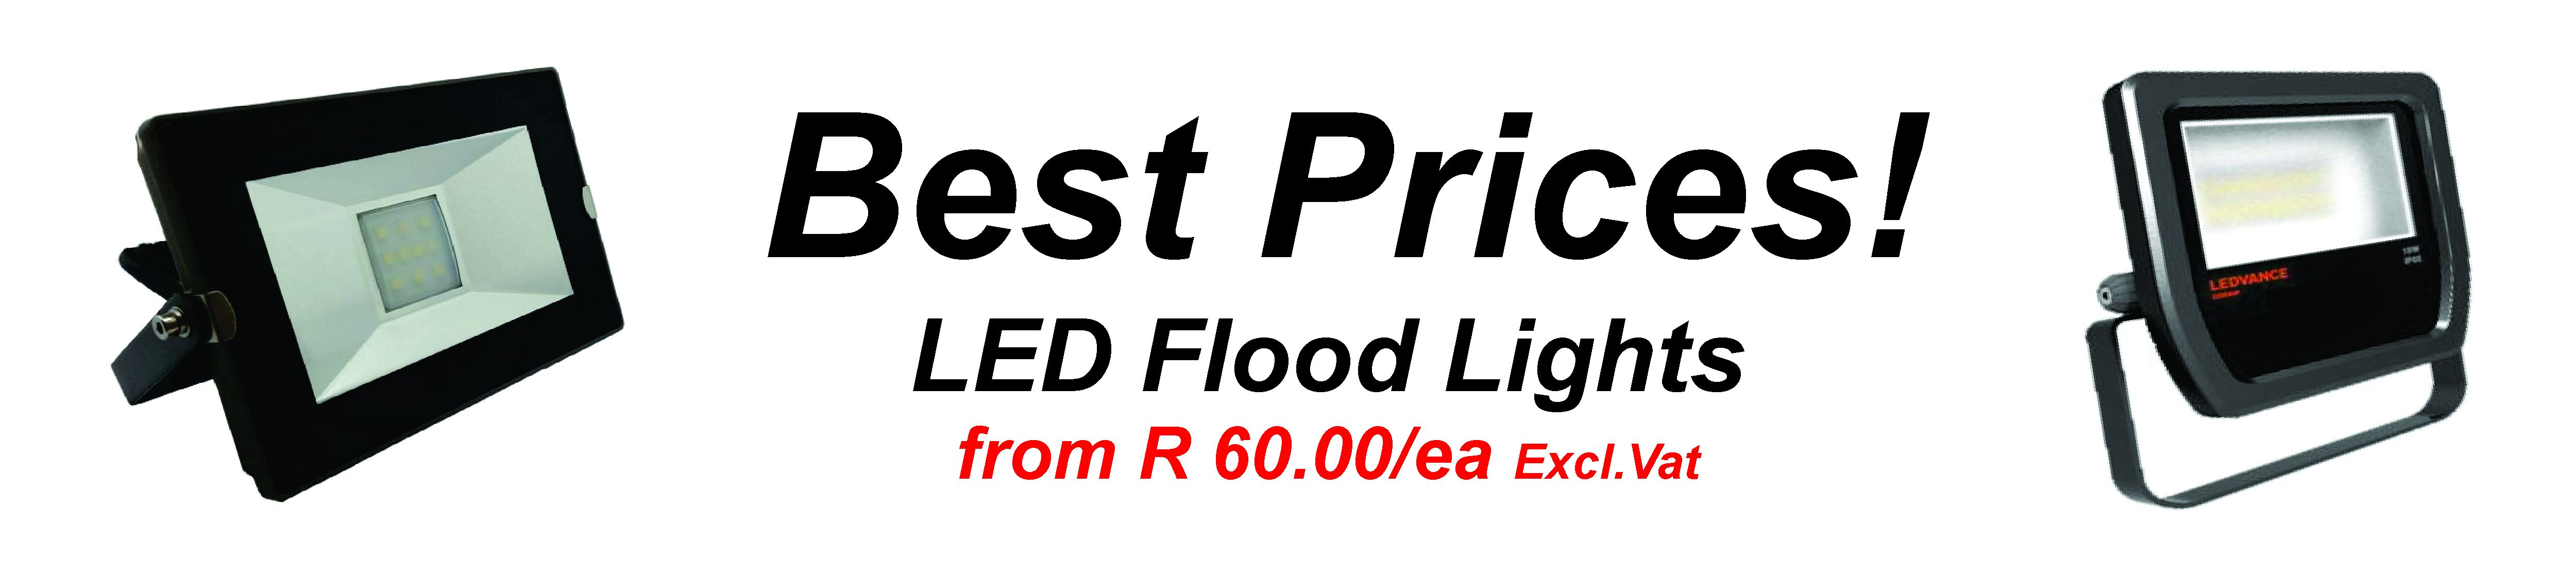 Best Prices For Quality Leds View Product Details Waterproof Flexiable 12 Volt Led Circuit Https Takealotcom Allsortbestselling20descendingrows20start0filteravailabletruefilterbrandledz Most Popular Products